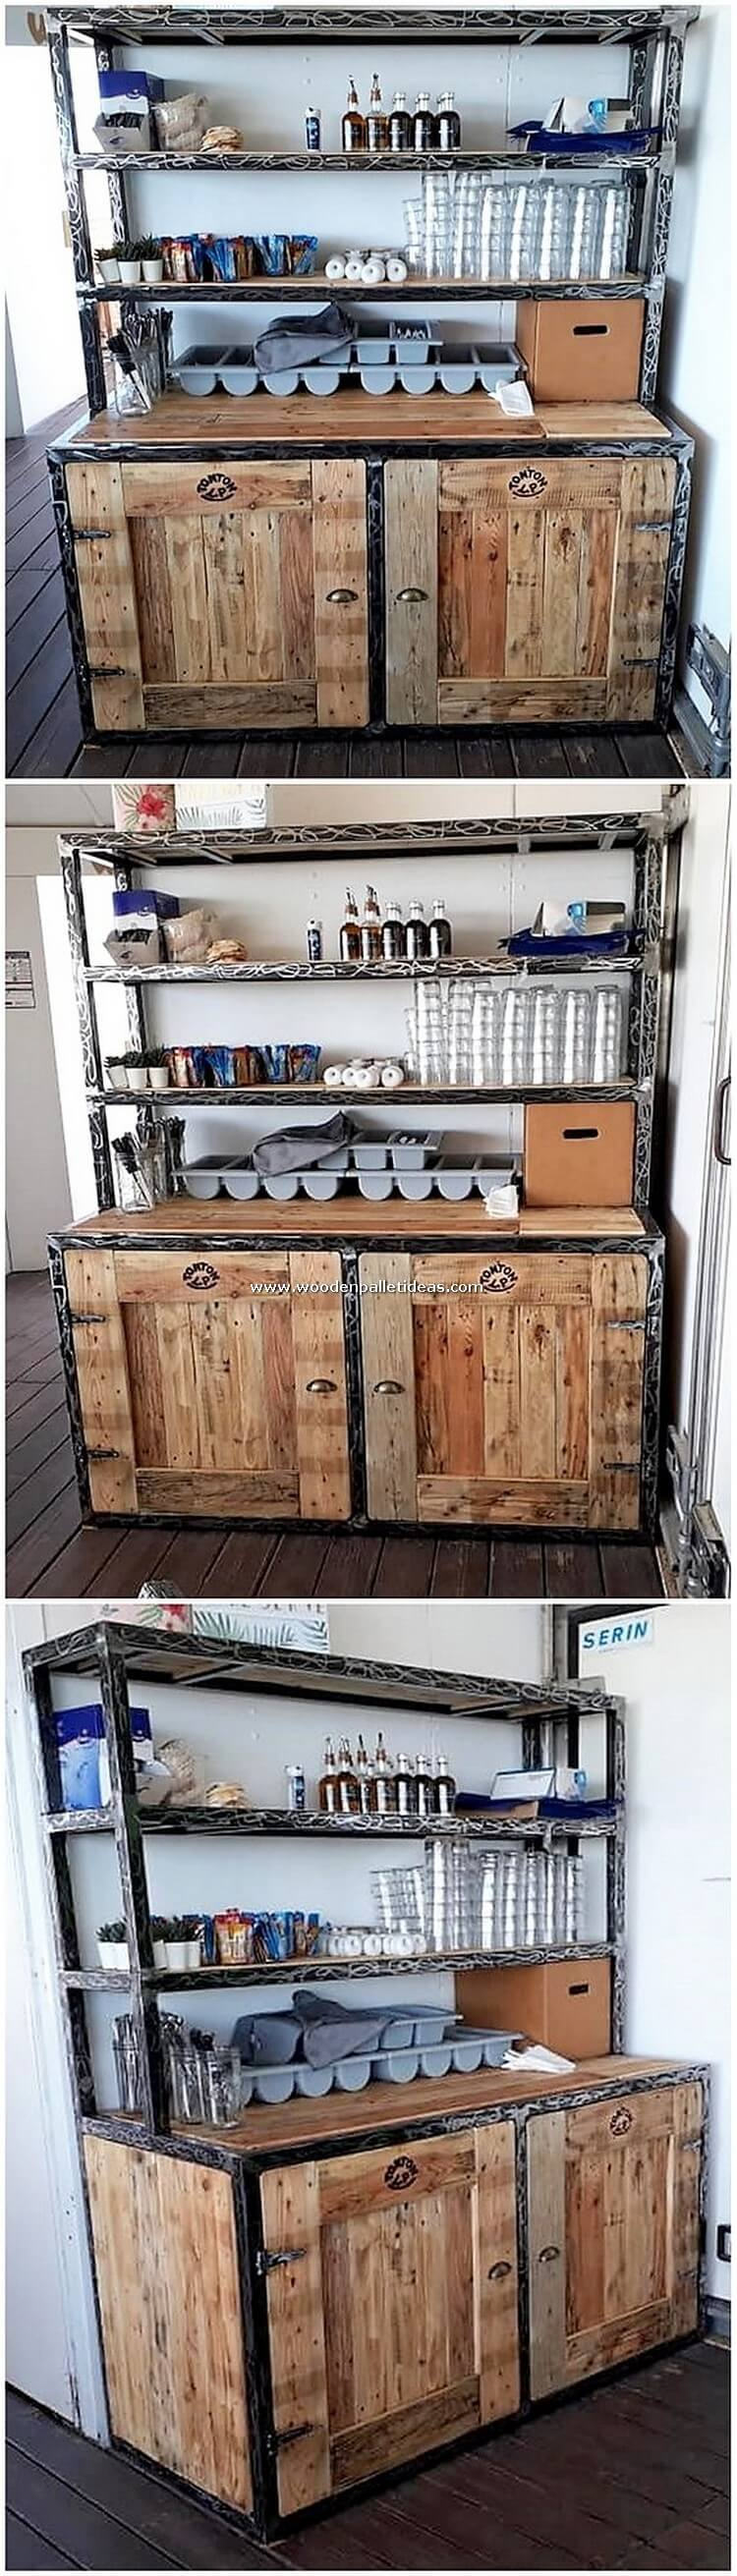 Pallet Desk with Cabinet